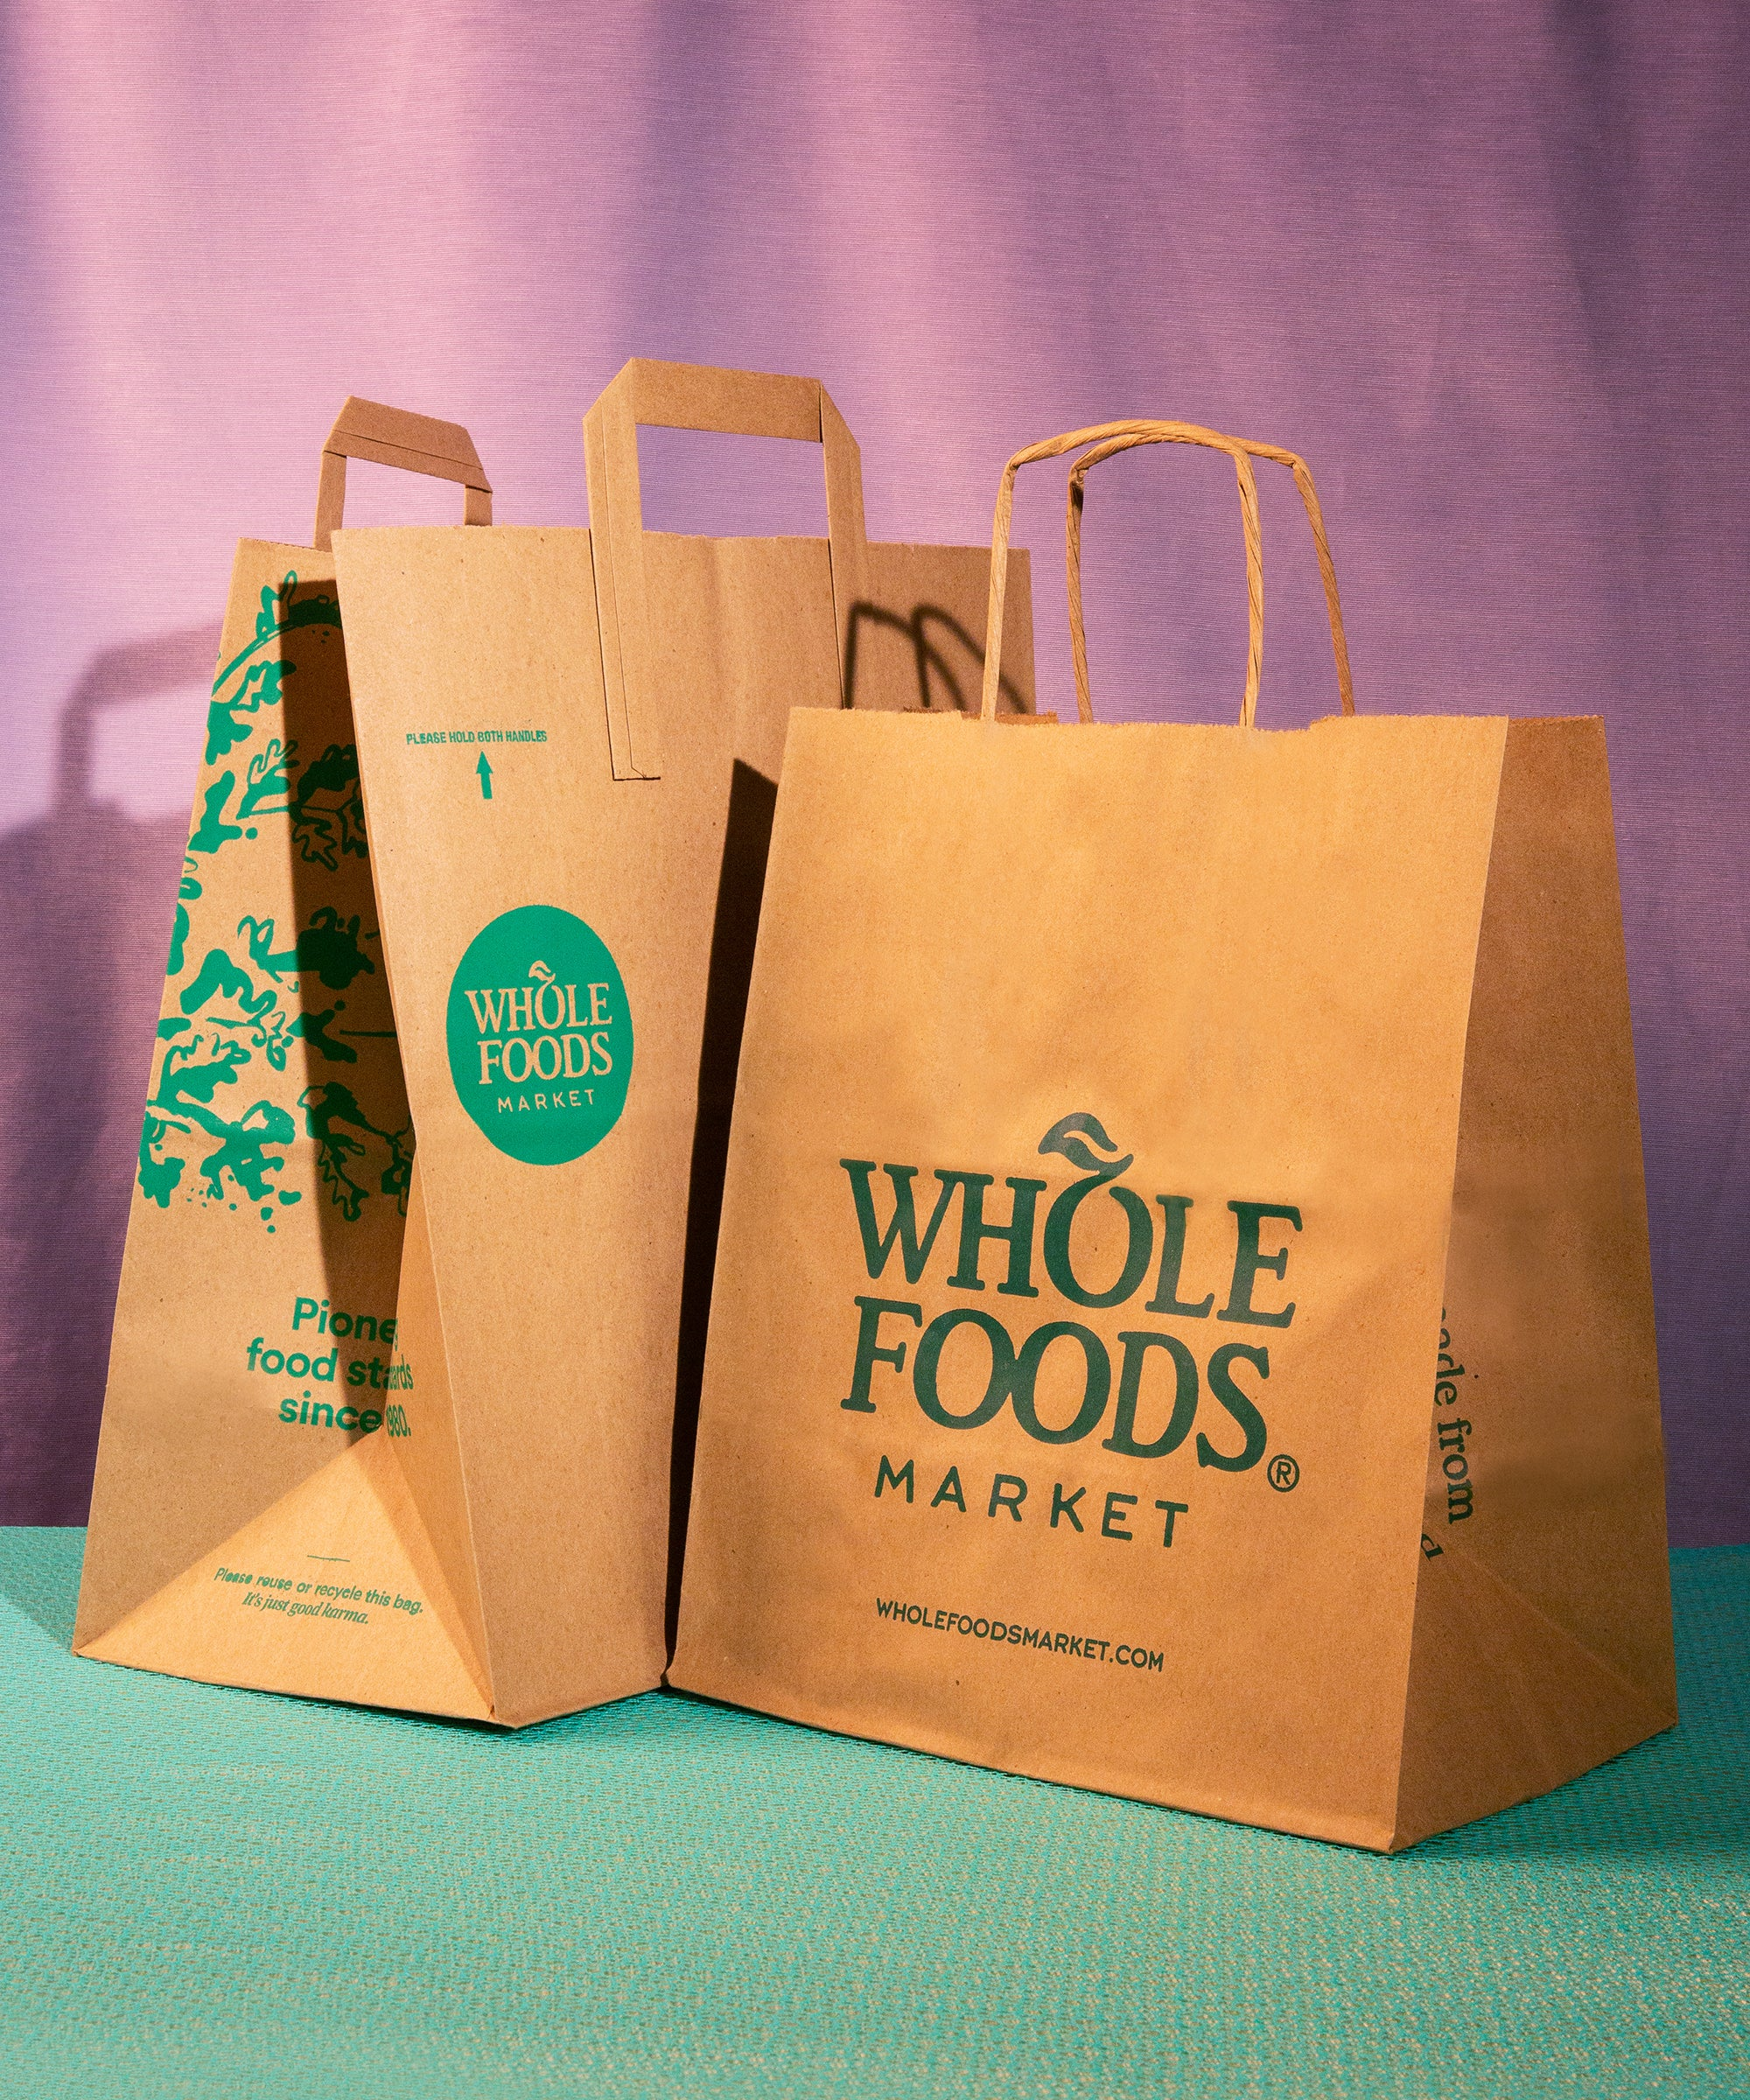 Amazon's Whole Foods To Cut Healthcare Benefits For 1,900 Part-Time Employees